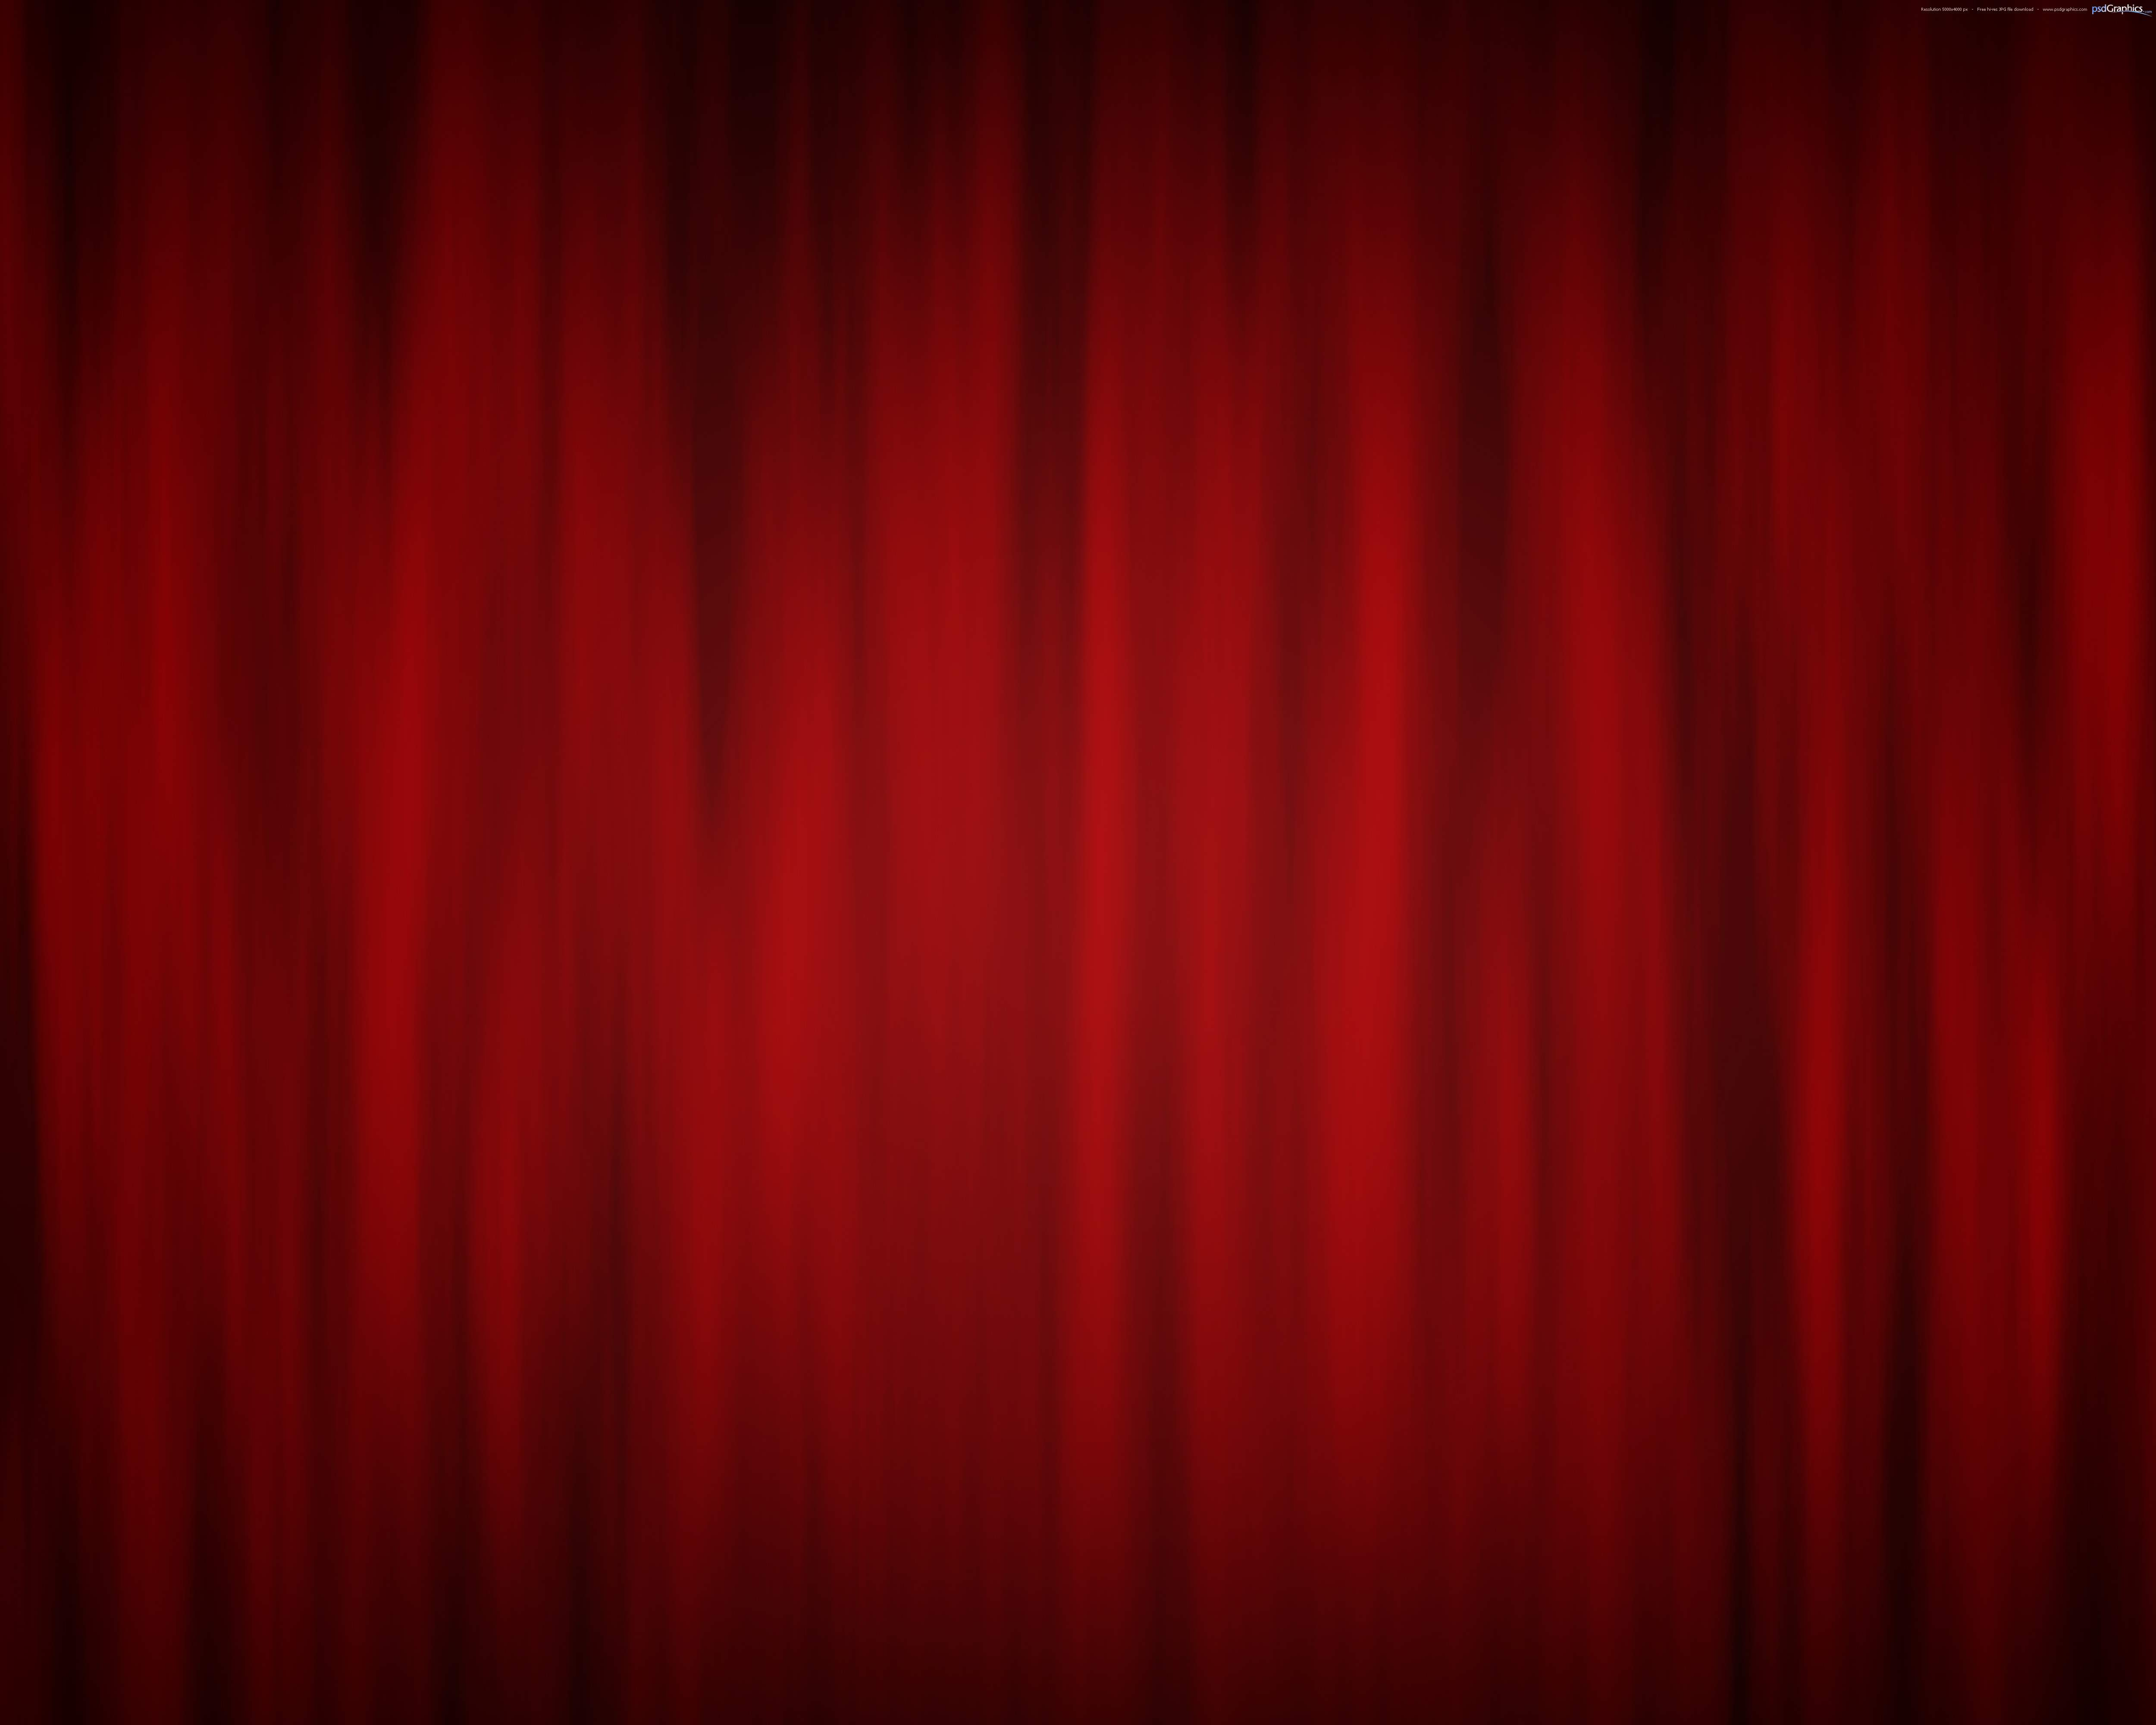 Red Curtain Theatre Stage Psdgraphics